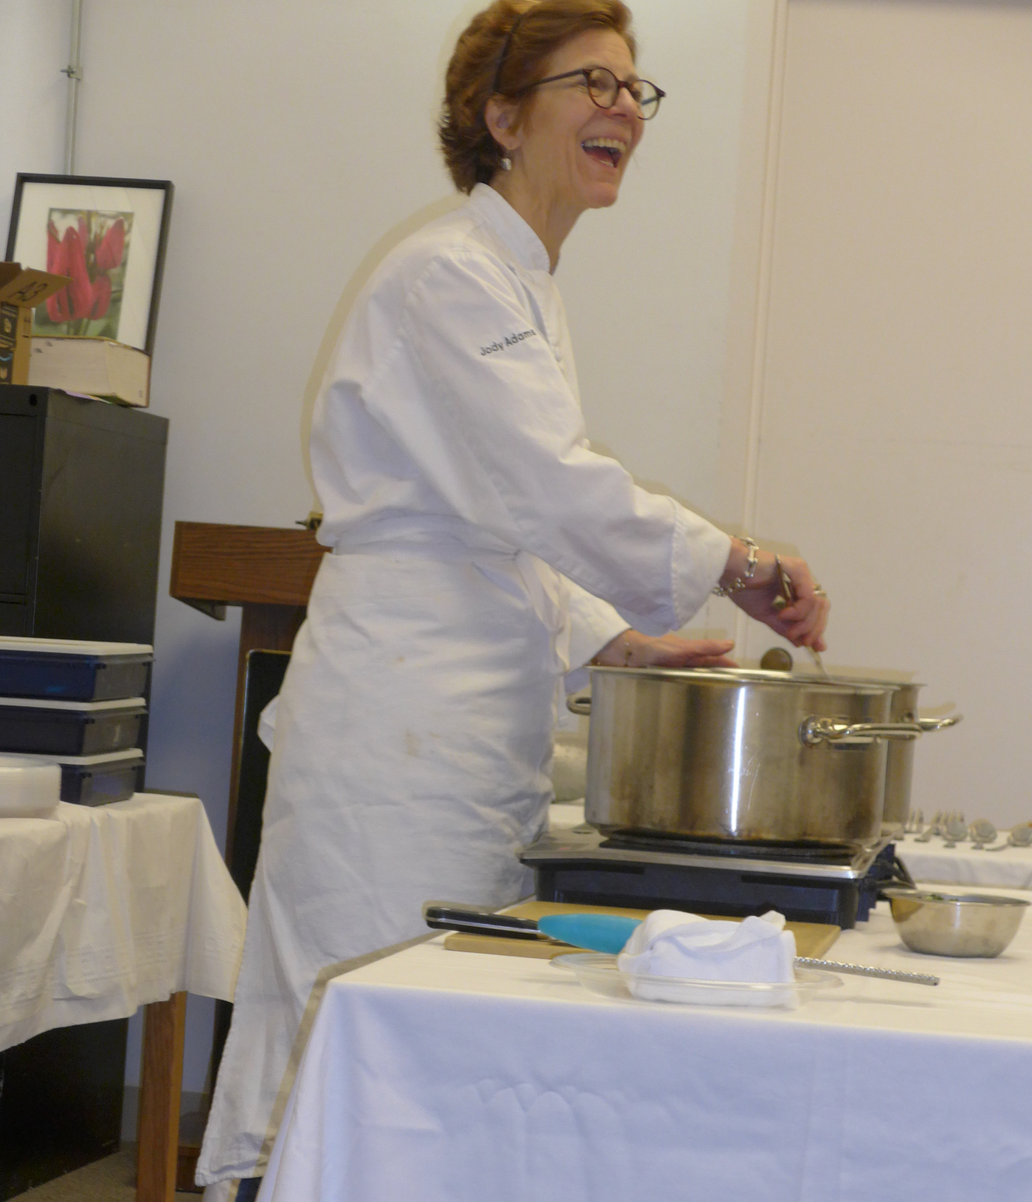 Award-winning chef Jody Adams cooking Campanelle at the South End library